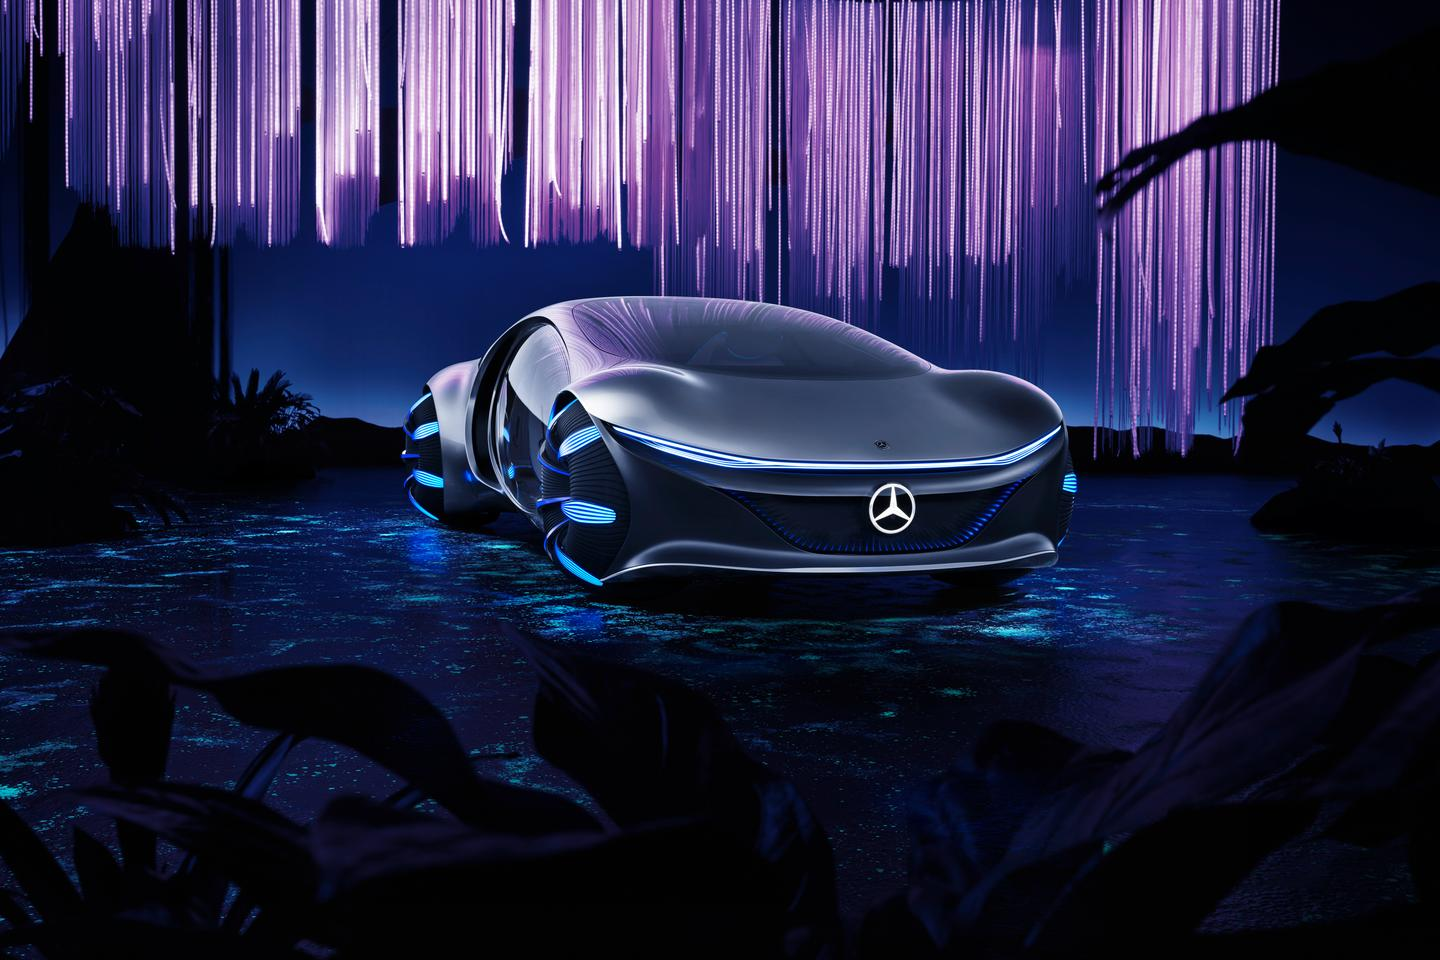 The Mercedes-Benz Vision AVTR concept is aimed towards ultra-futuristic, holistic driving